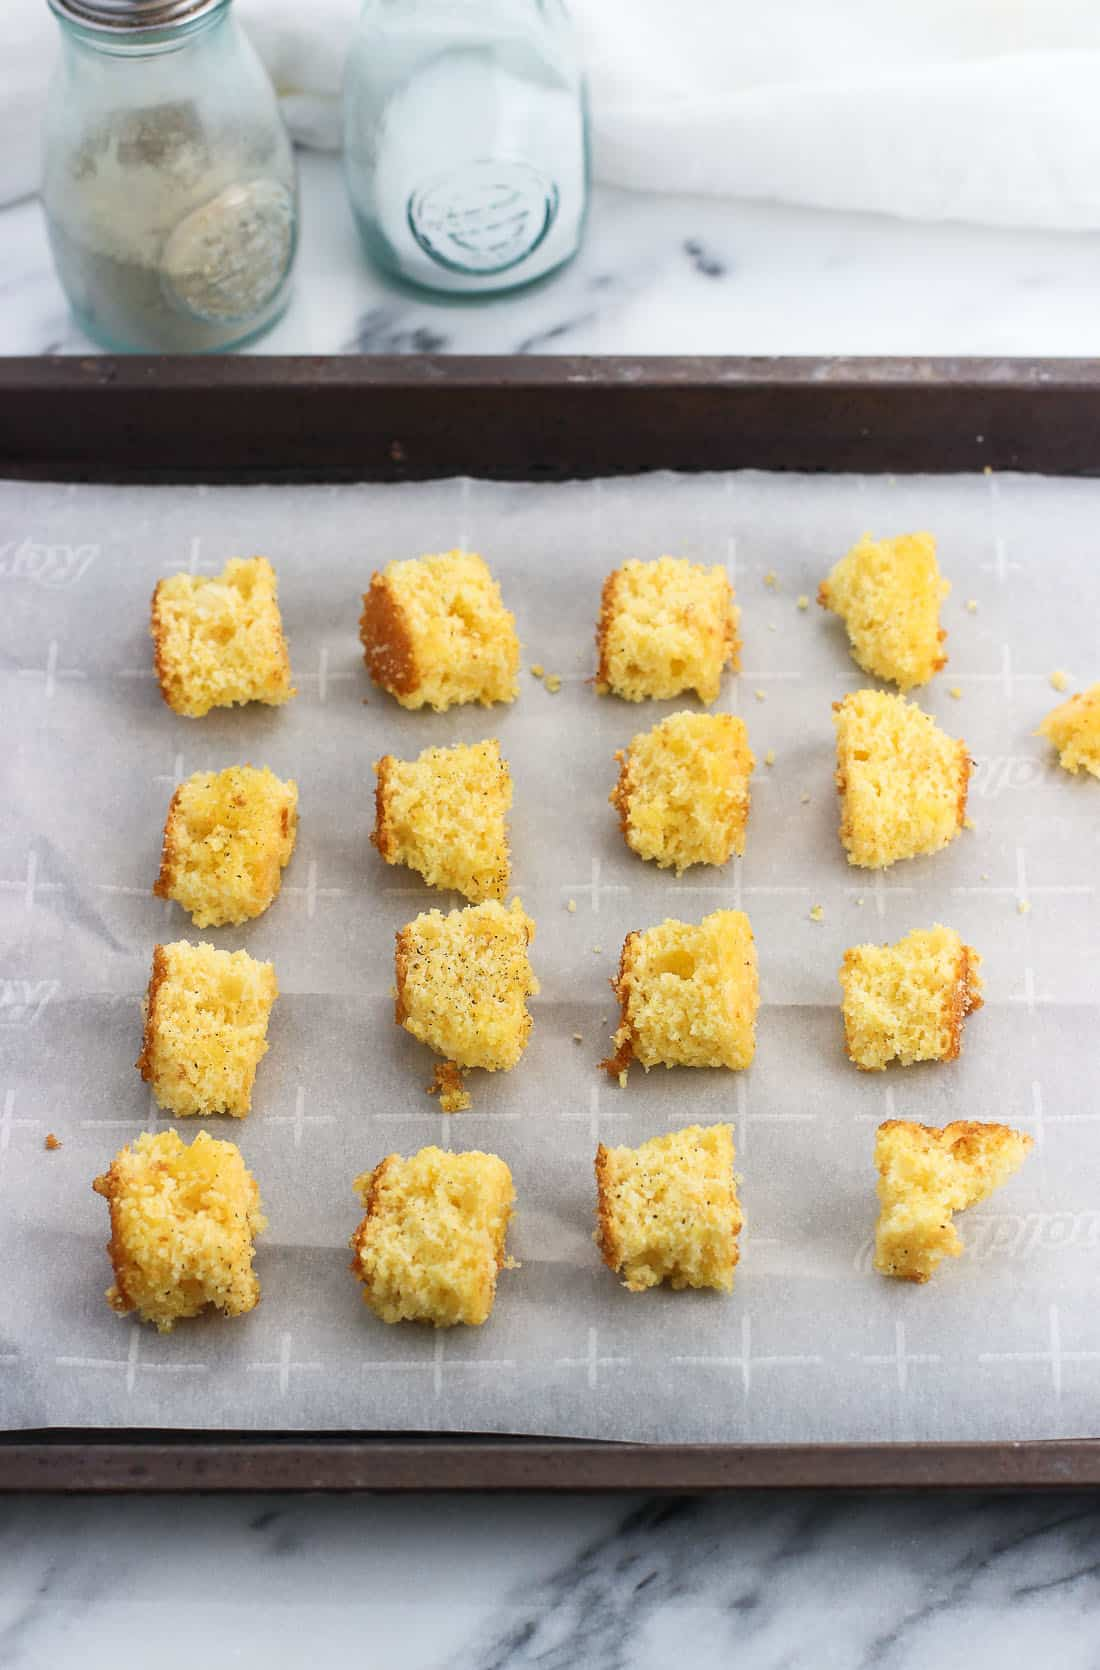 Sixteen pieces of small cornbread cubes on a parchment-lined baking sheet before baking